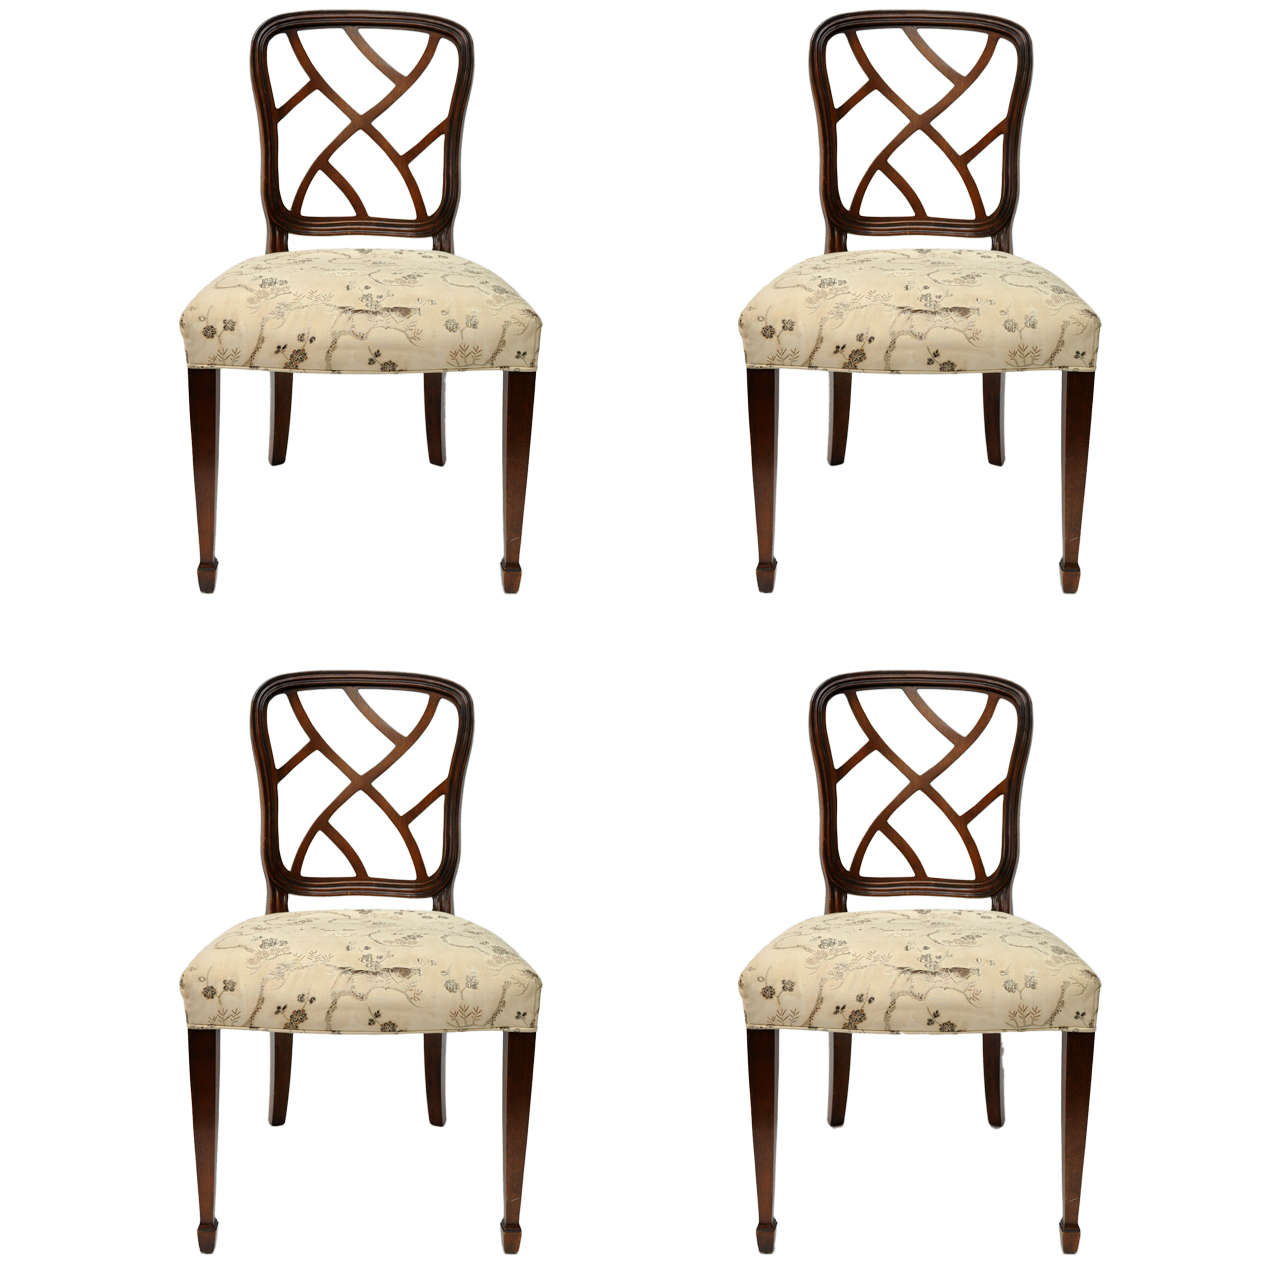 Kindel dining chairs at 1stdibs for 4 x dining room chairs